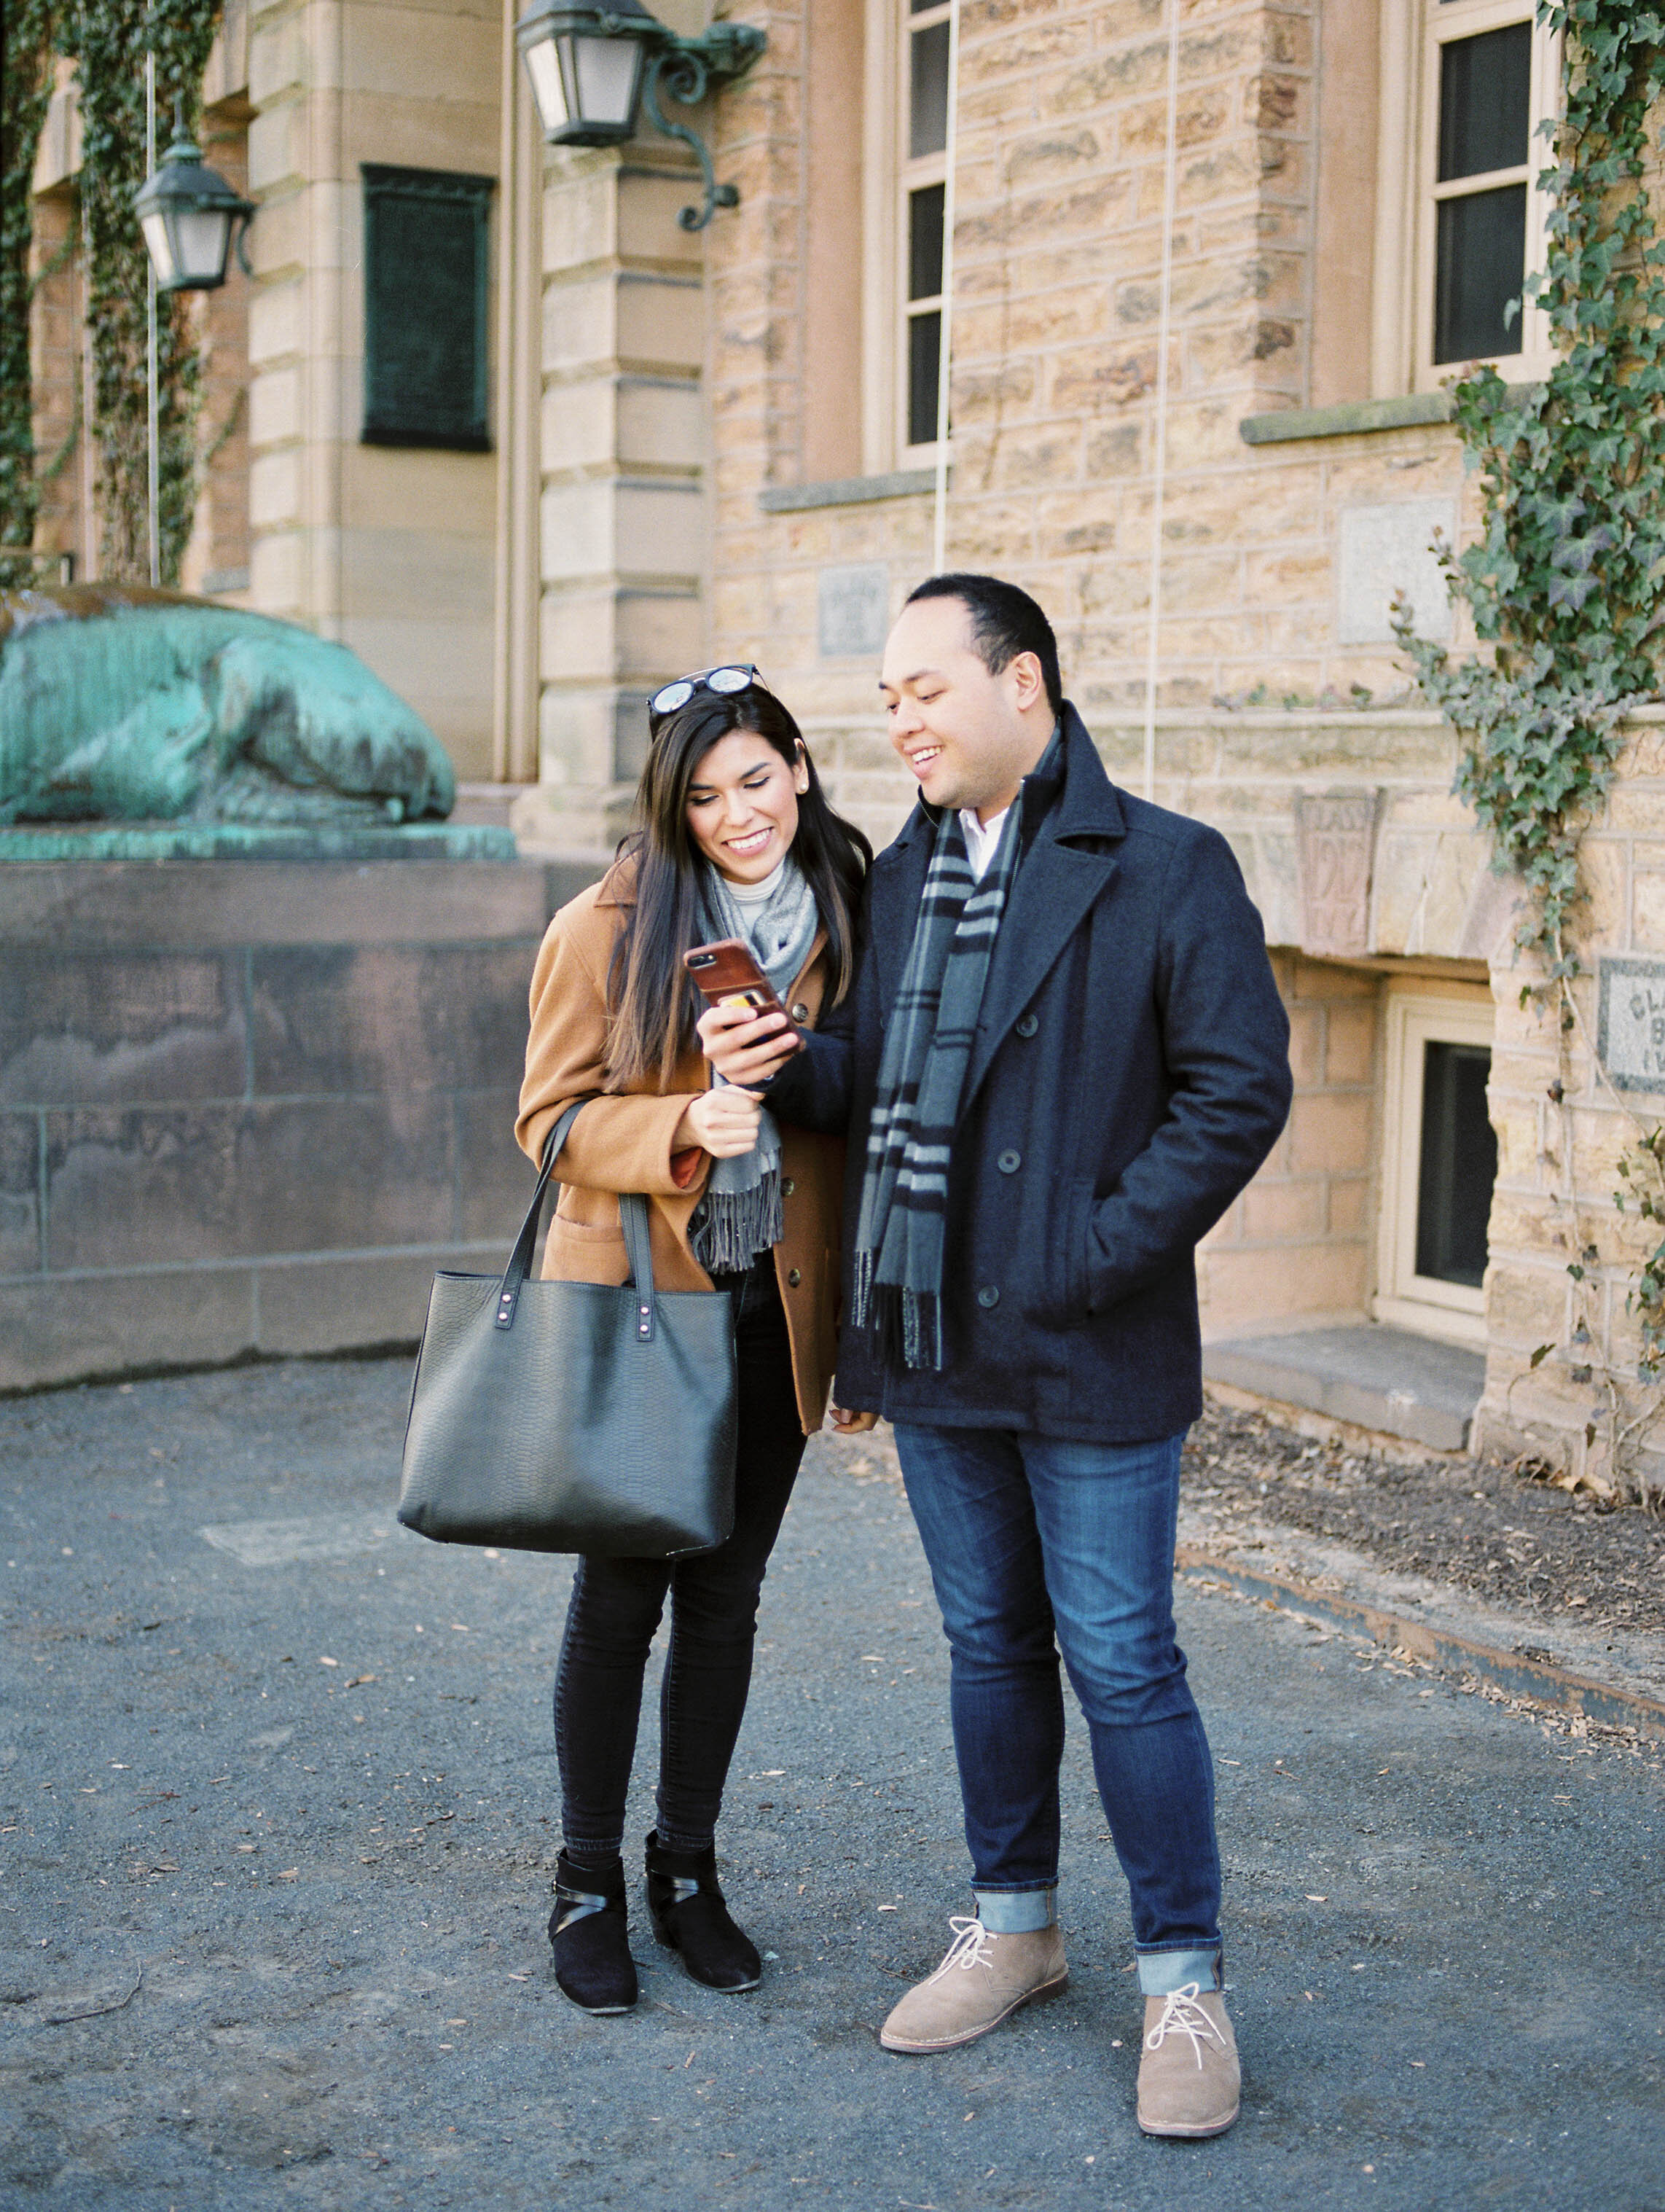 Outdoor lifestyle couples session with beige coat, sunglasses, coffee, shopping in Princeton New Jersey on Princeton University Campus by Liz Andolina Photography